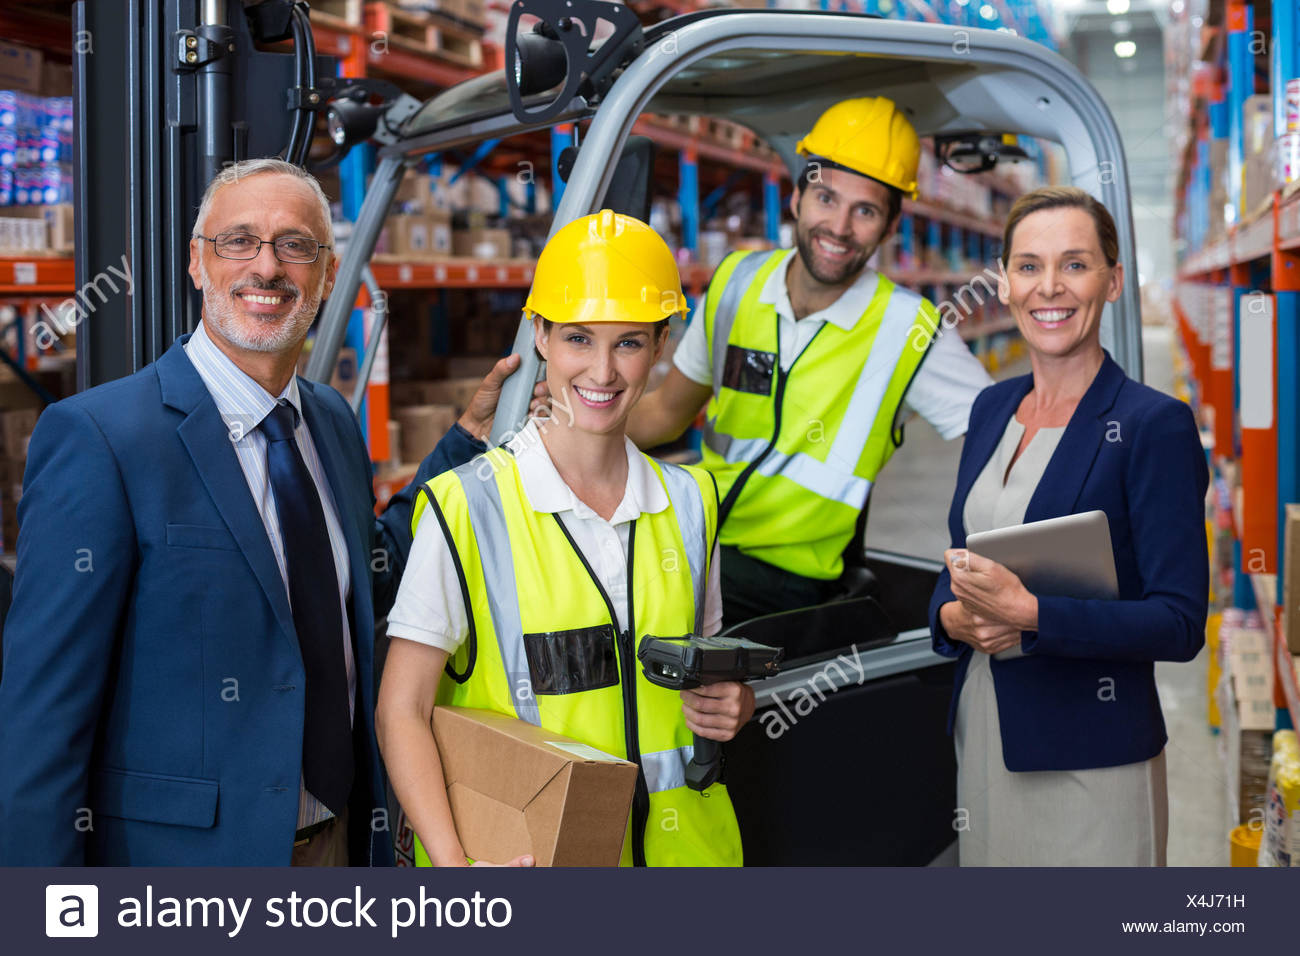 Businessman controlling digital device of worker - Stock Image